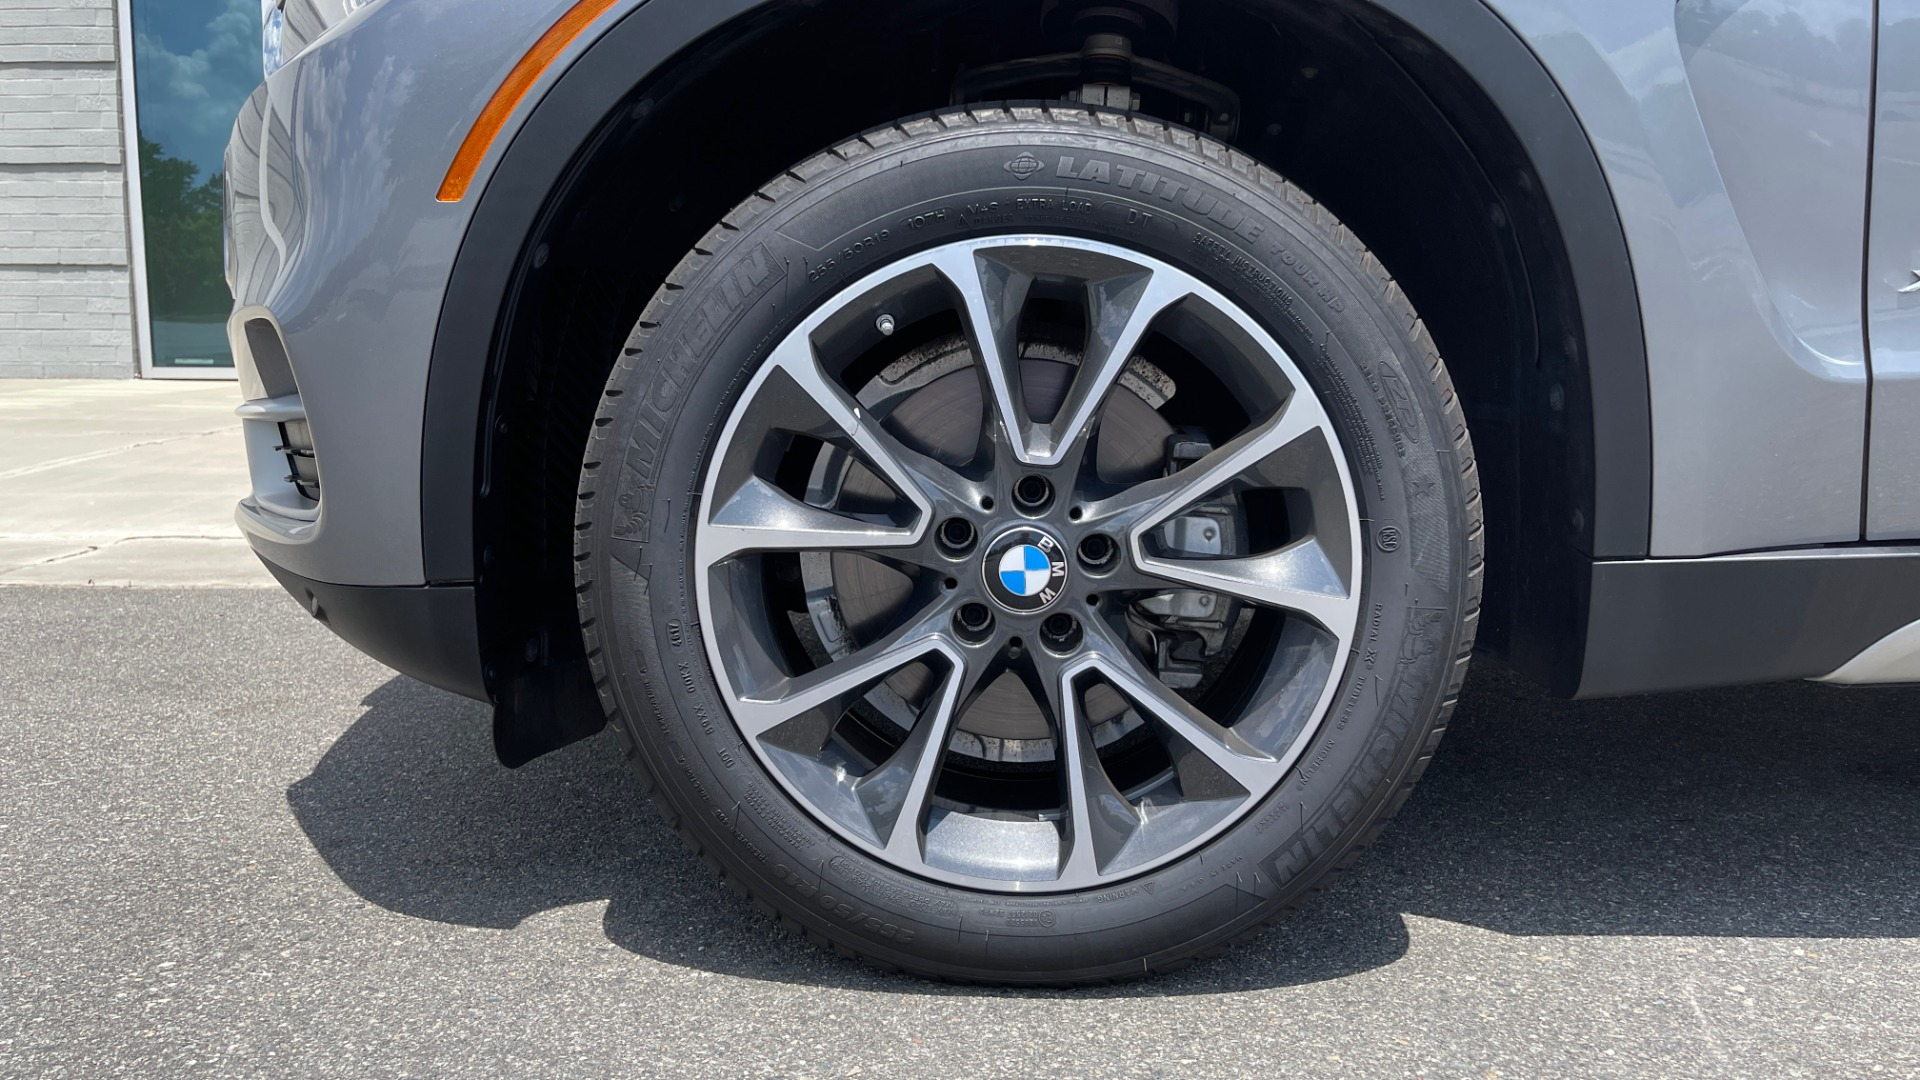 Used 2018 BMW X5 XDRIVE35I PREMIUM / DRVR ASST / WIRELESS CHARGING / CAMERAS for sale $46,995 at Formula Imports in Charlotte NC 28227 82